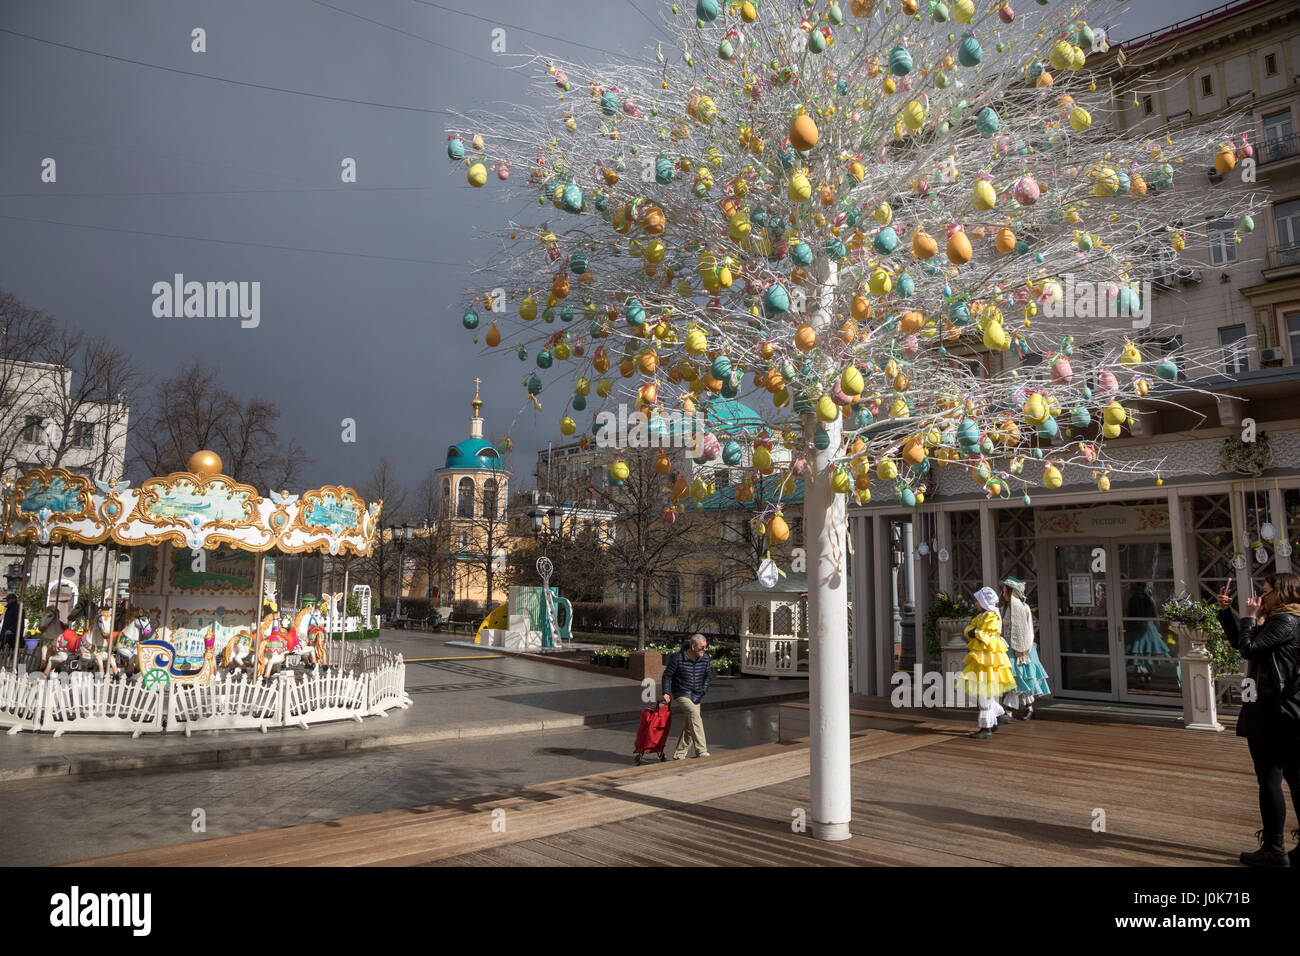 Decoration of tverskaya square during the easter gift festival in decoration of tverskaya square during the easter gift festival in center of moscow russia negle Image collections